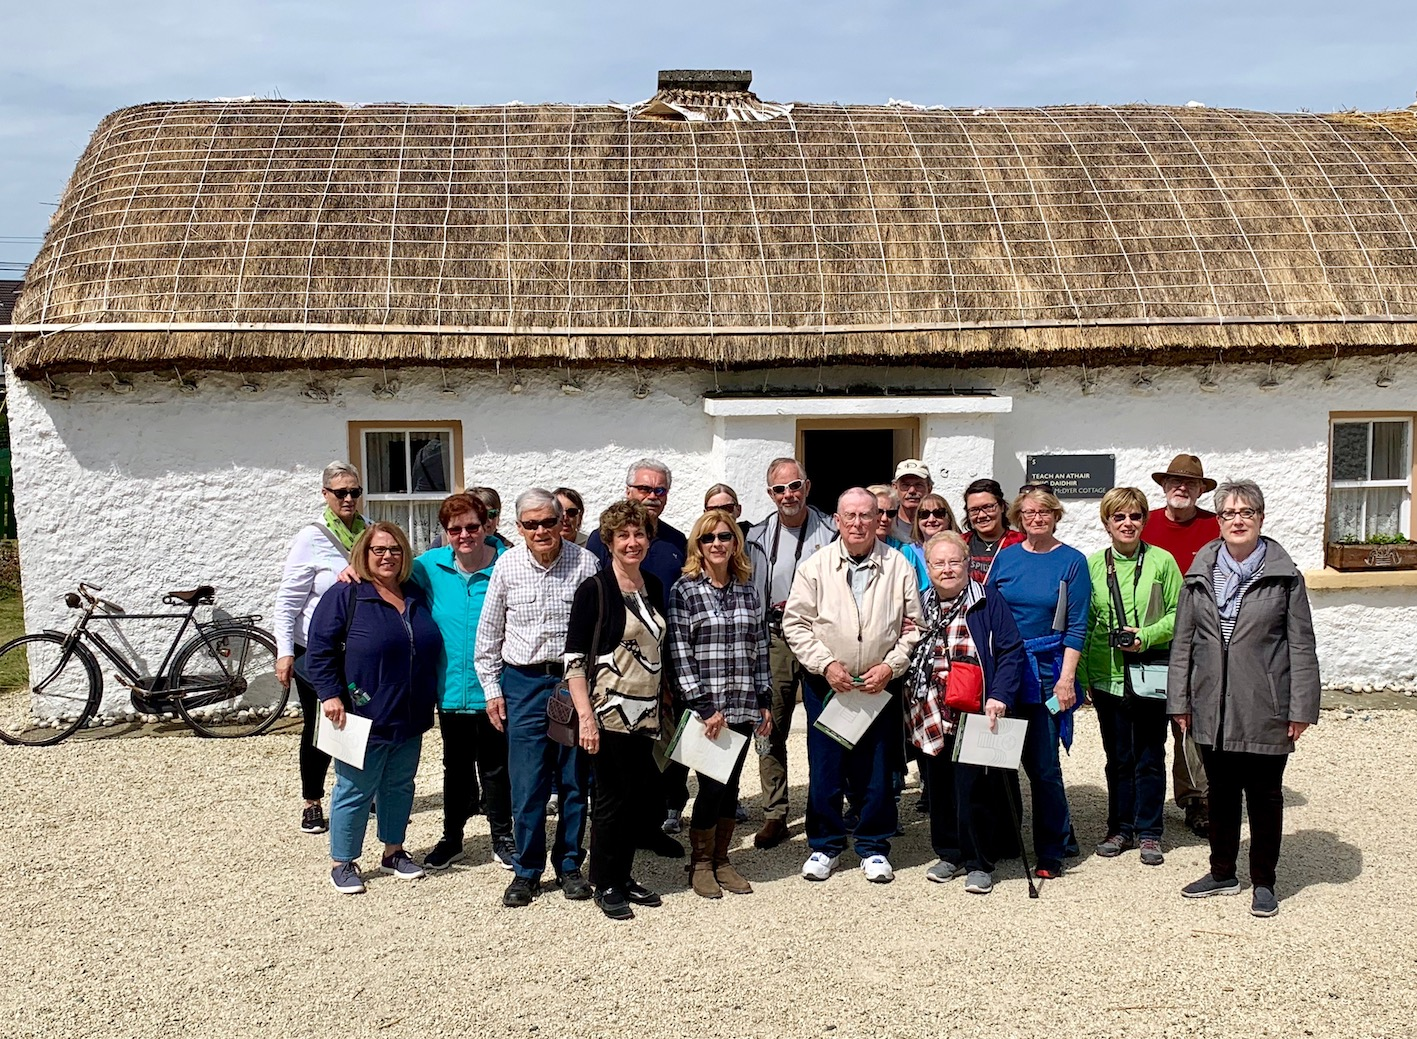 2019 May Tour Group in Glencolmcille in Donegal